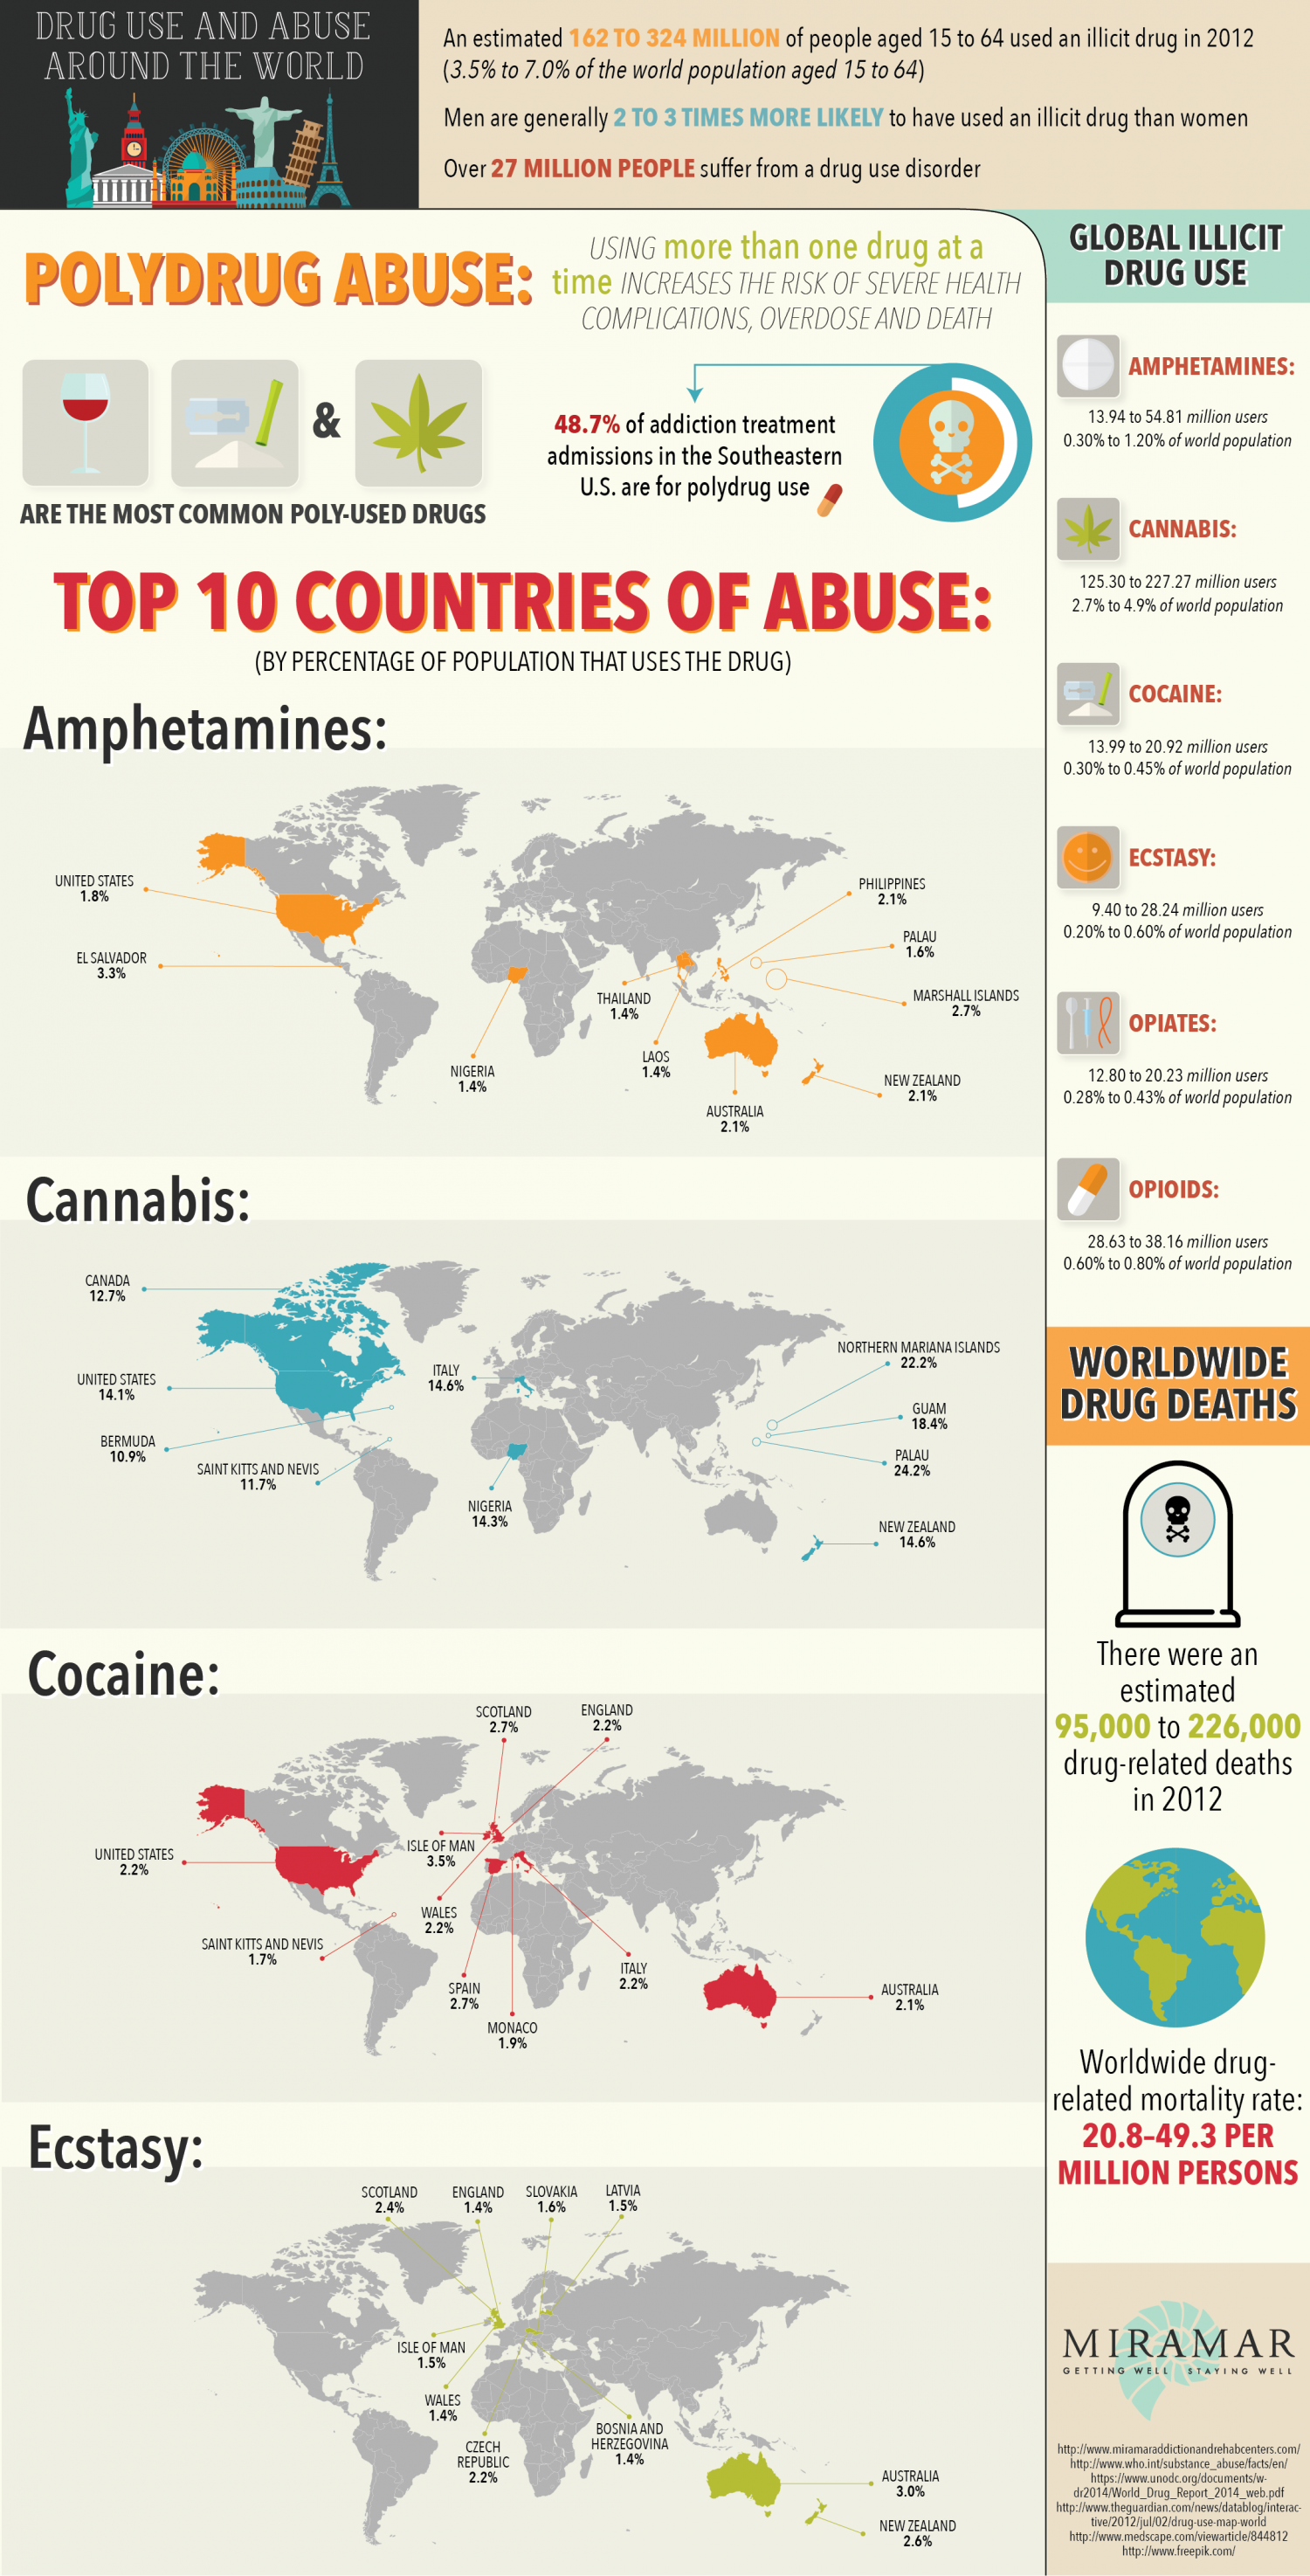 Drug Use and Abuse Around the World Infographic